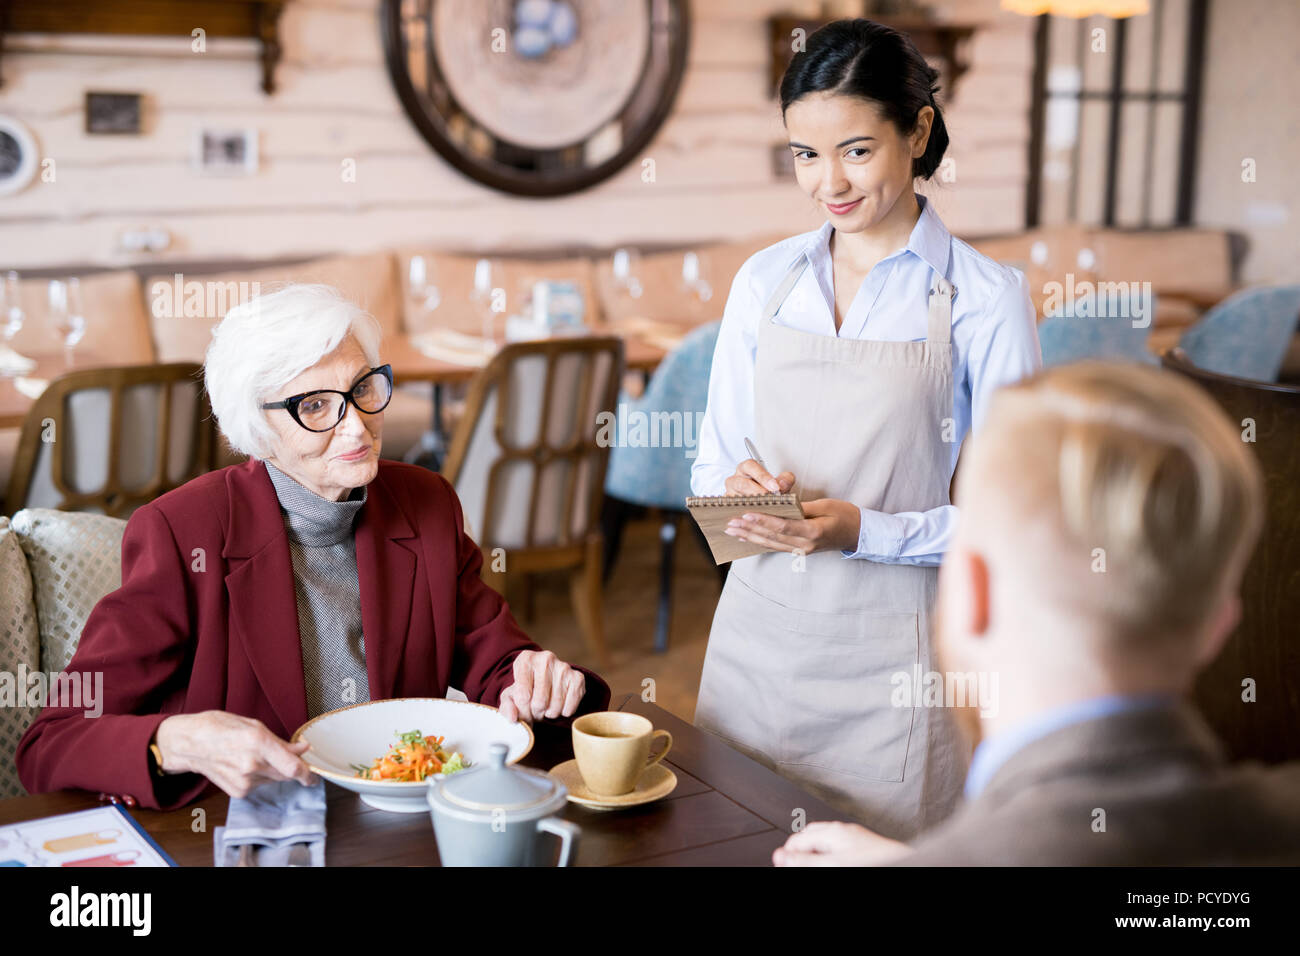 Family at the restaurant - Stock Image